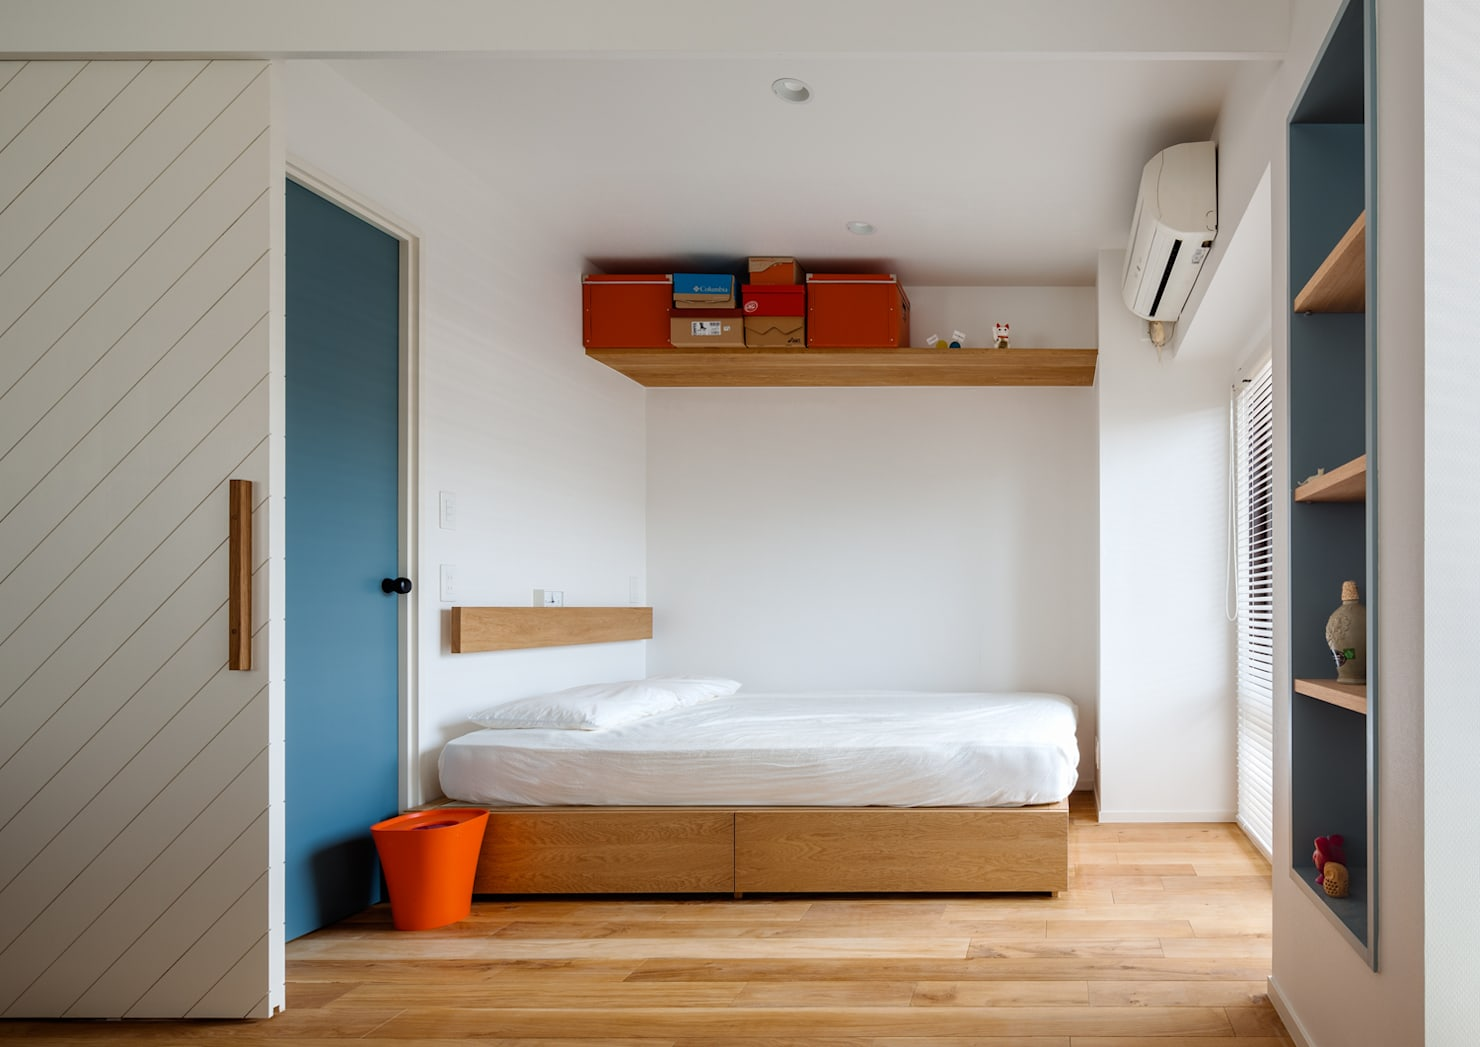 7 steps to a simpler home (and life)